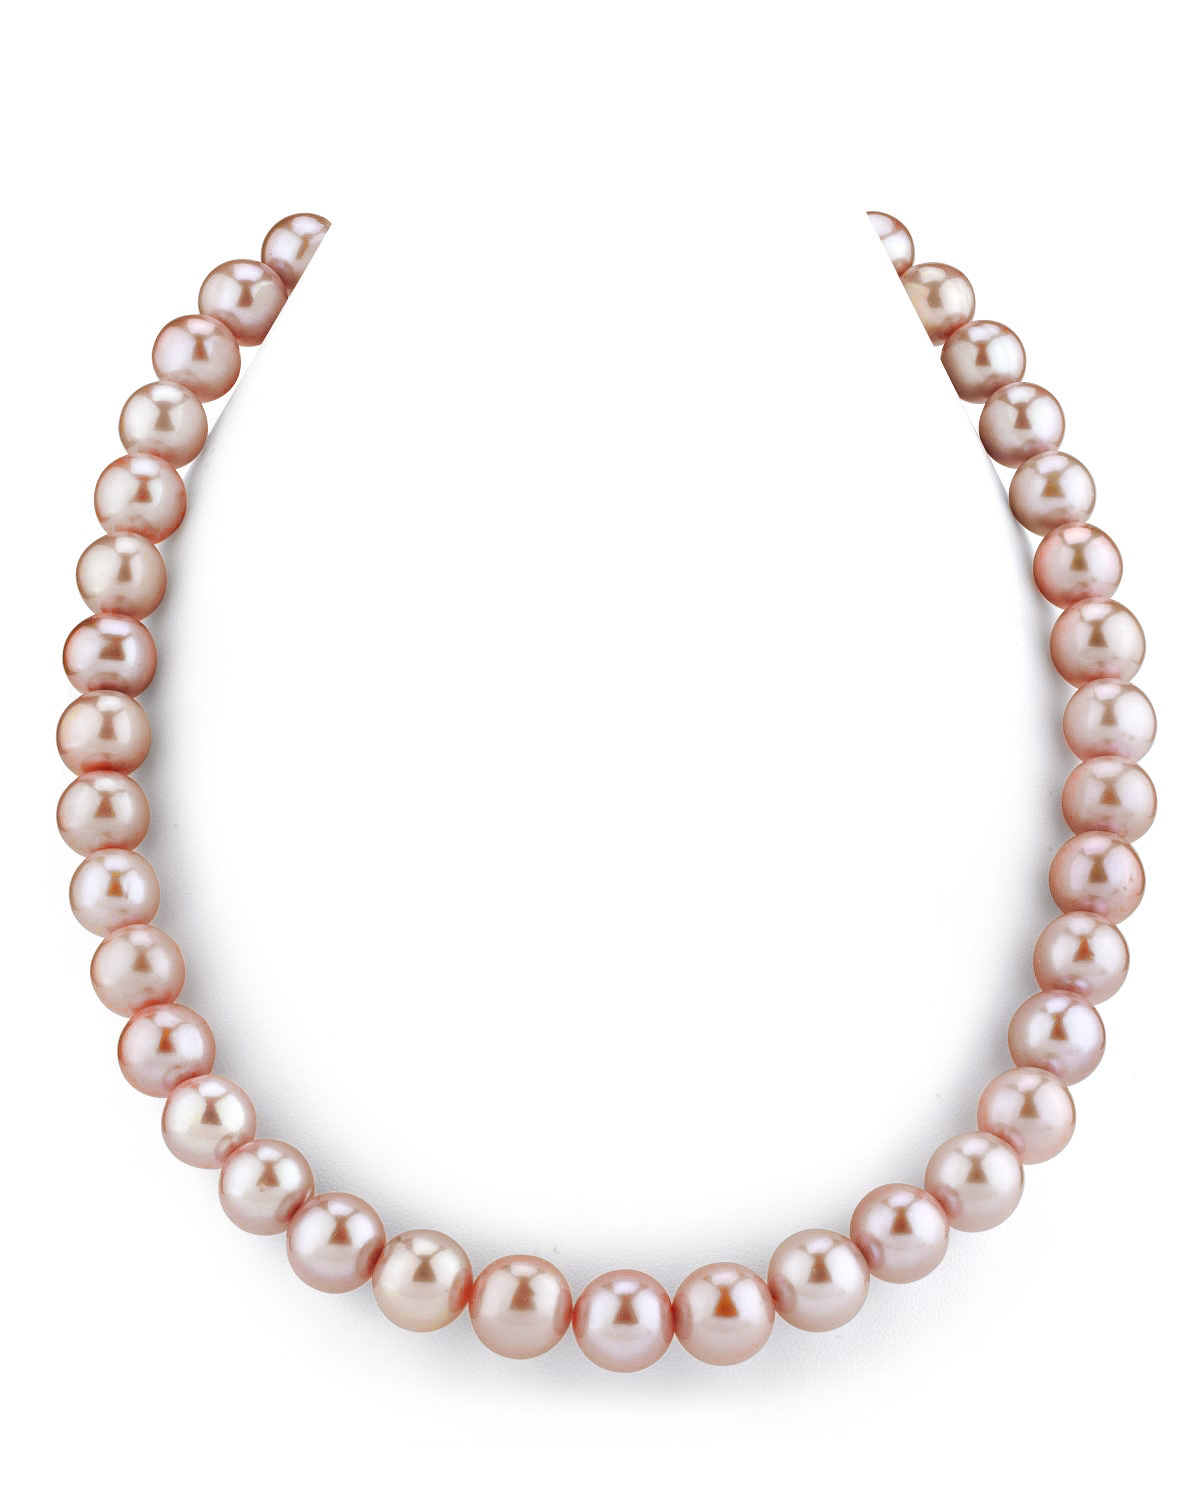 11-12mm Pink Freshwater Pearl Necklace